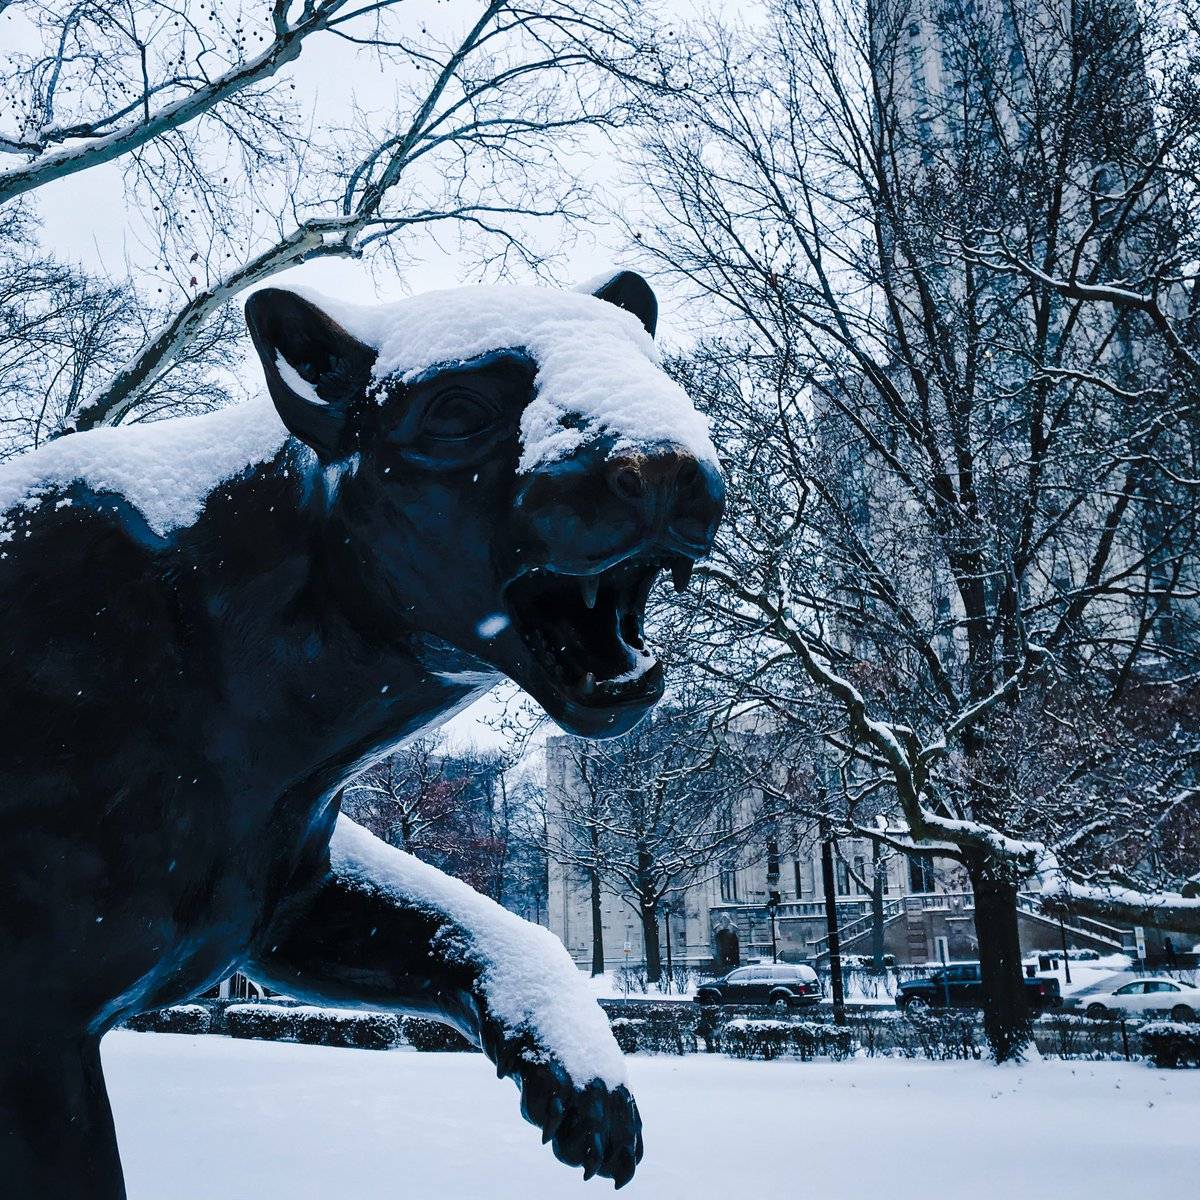 RT @H2Ppatrick: Stay warm out there, Panthers #h2p https://t.co/yYxMi8hVMm